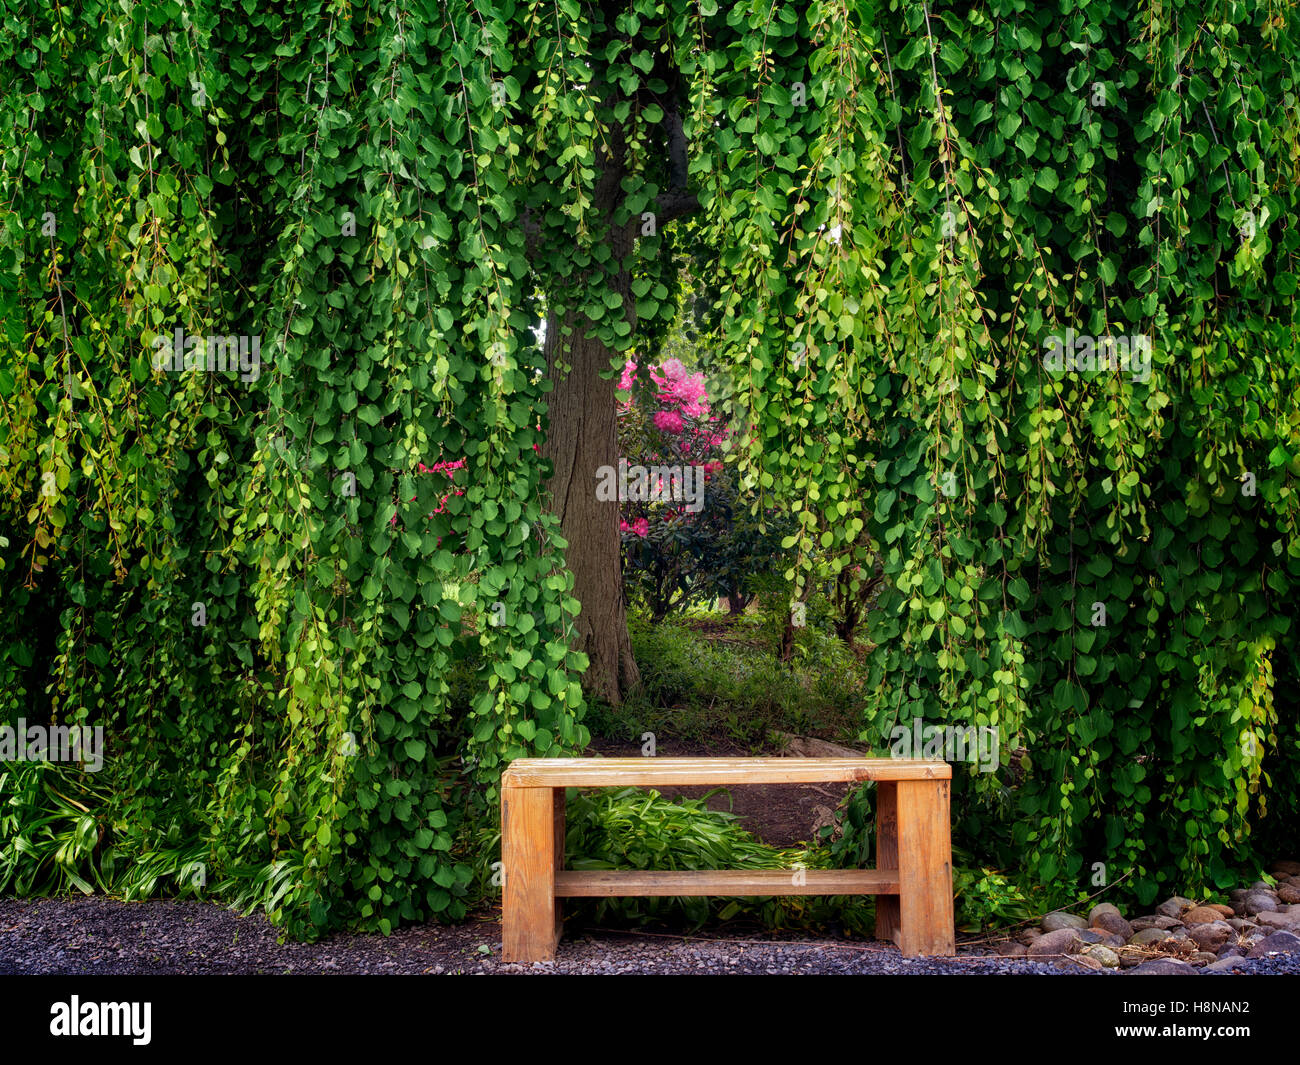 Tree and bench with rhododendron. Oregon Garden, Oregon - Stock Image